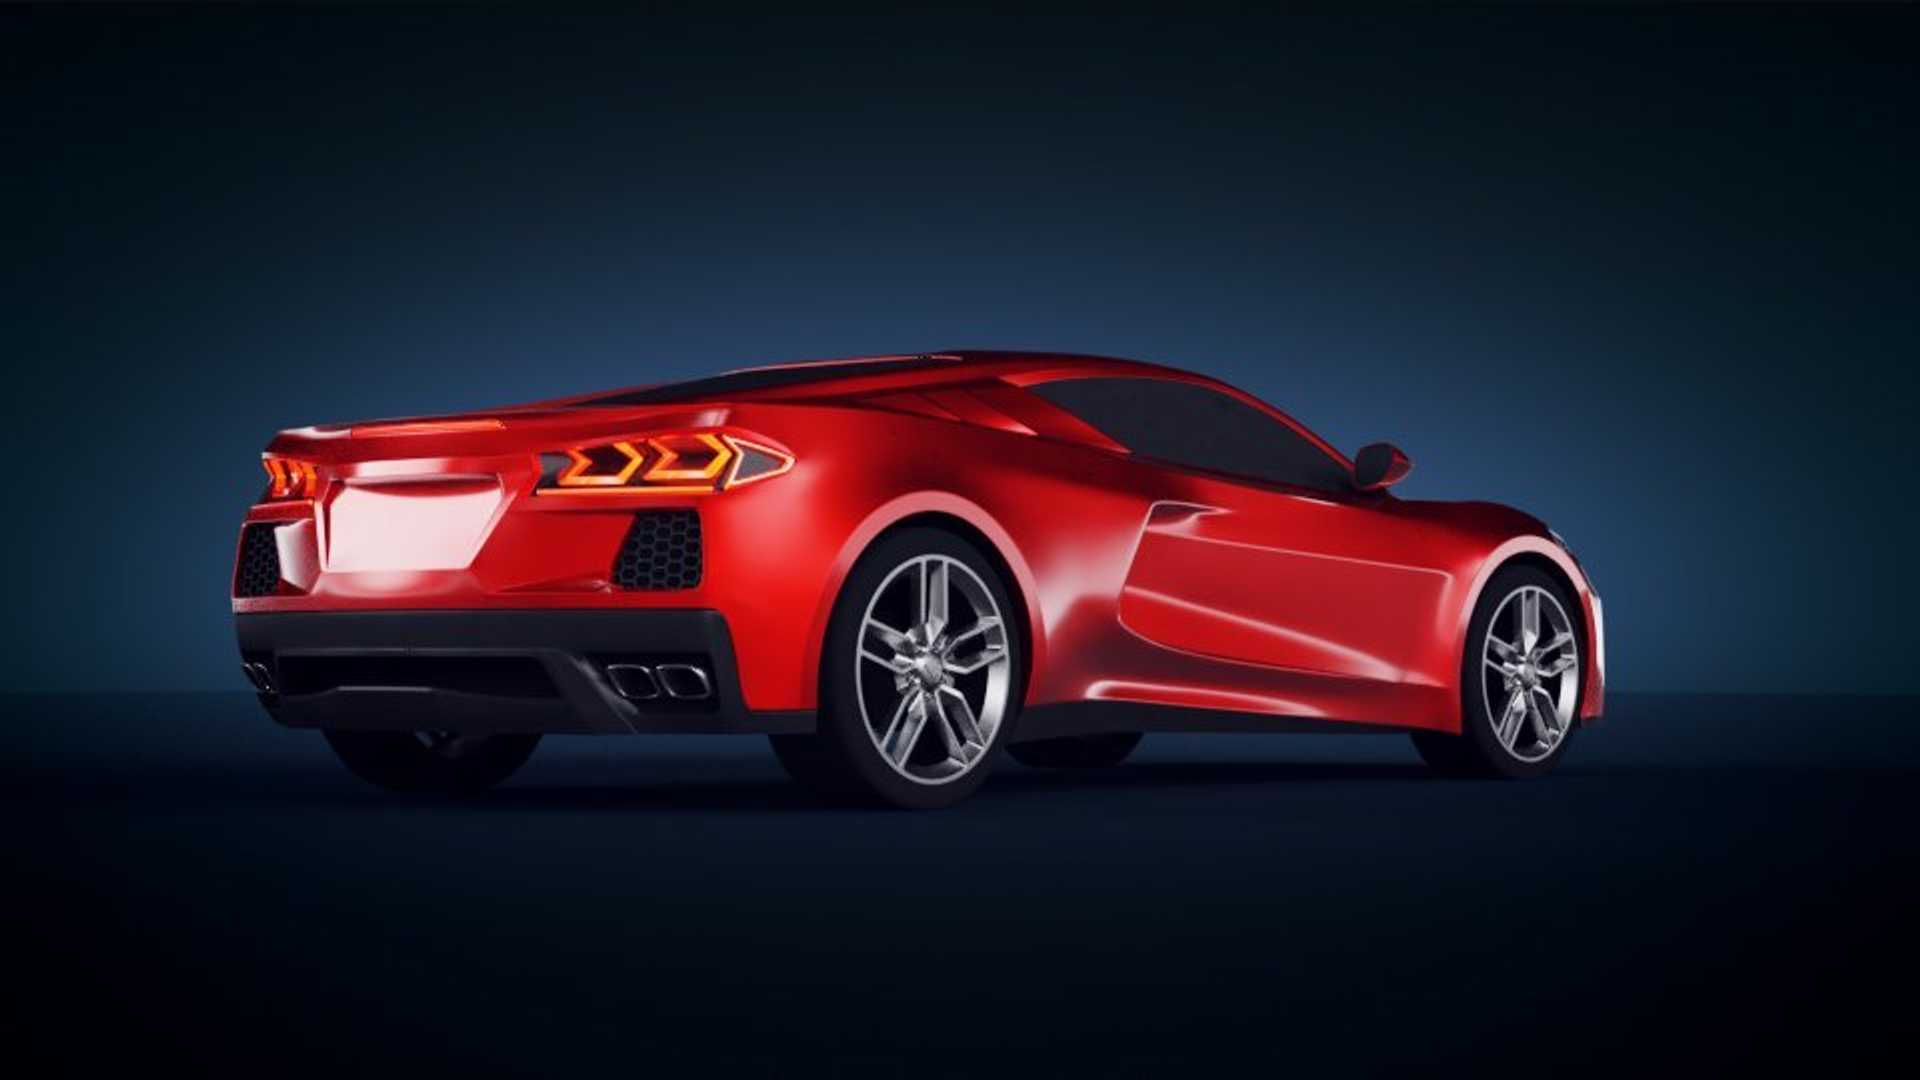 49 The Best 2020 Corvette Z07 Exterior